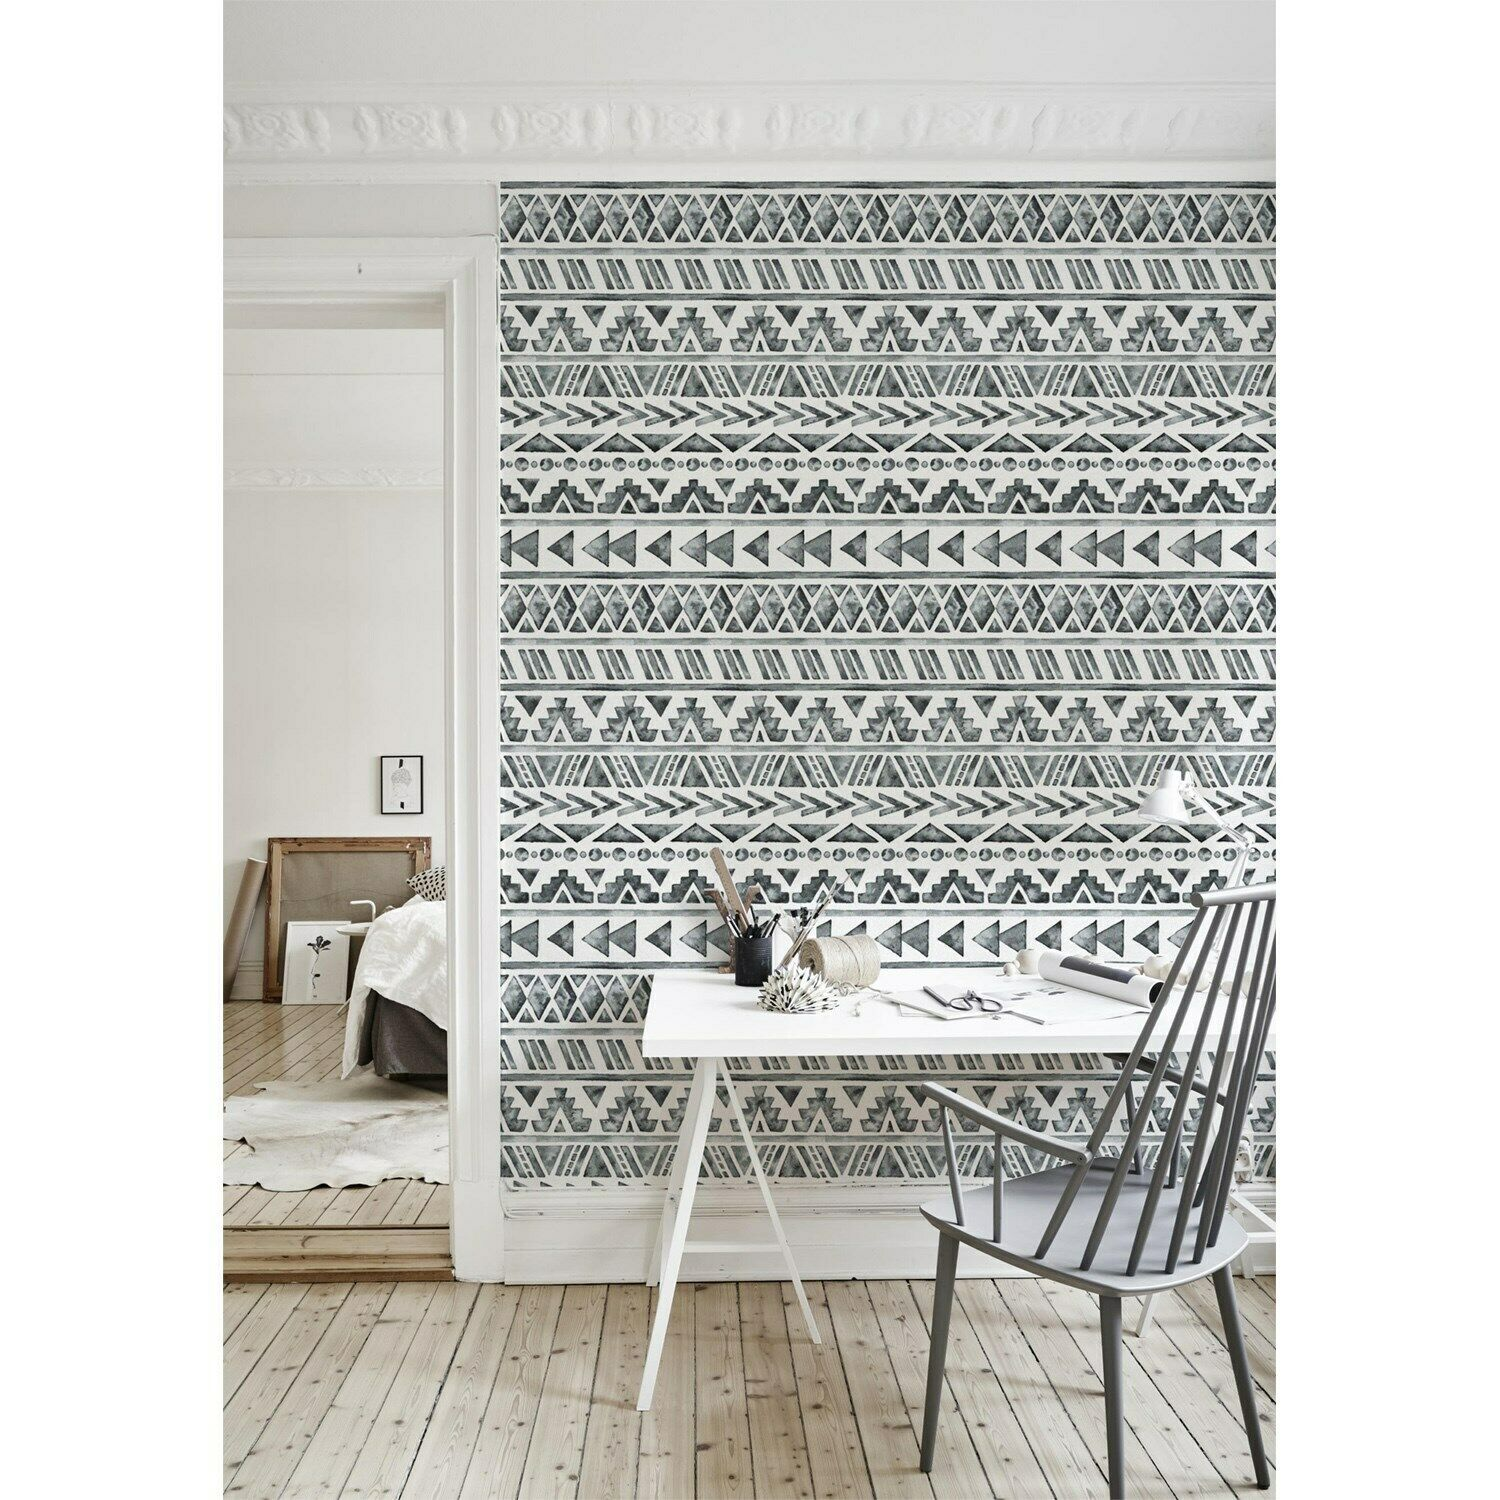 Faded Ethnic wall mural Geometric wall Home decor Simple Non-Woven wallpaper